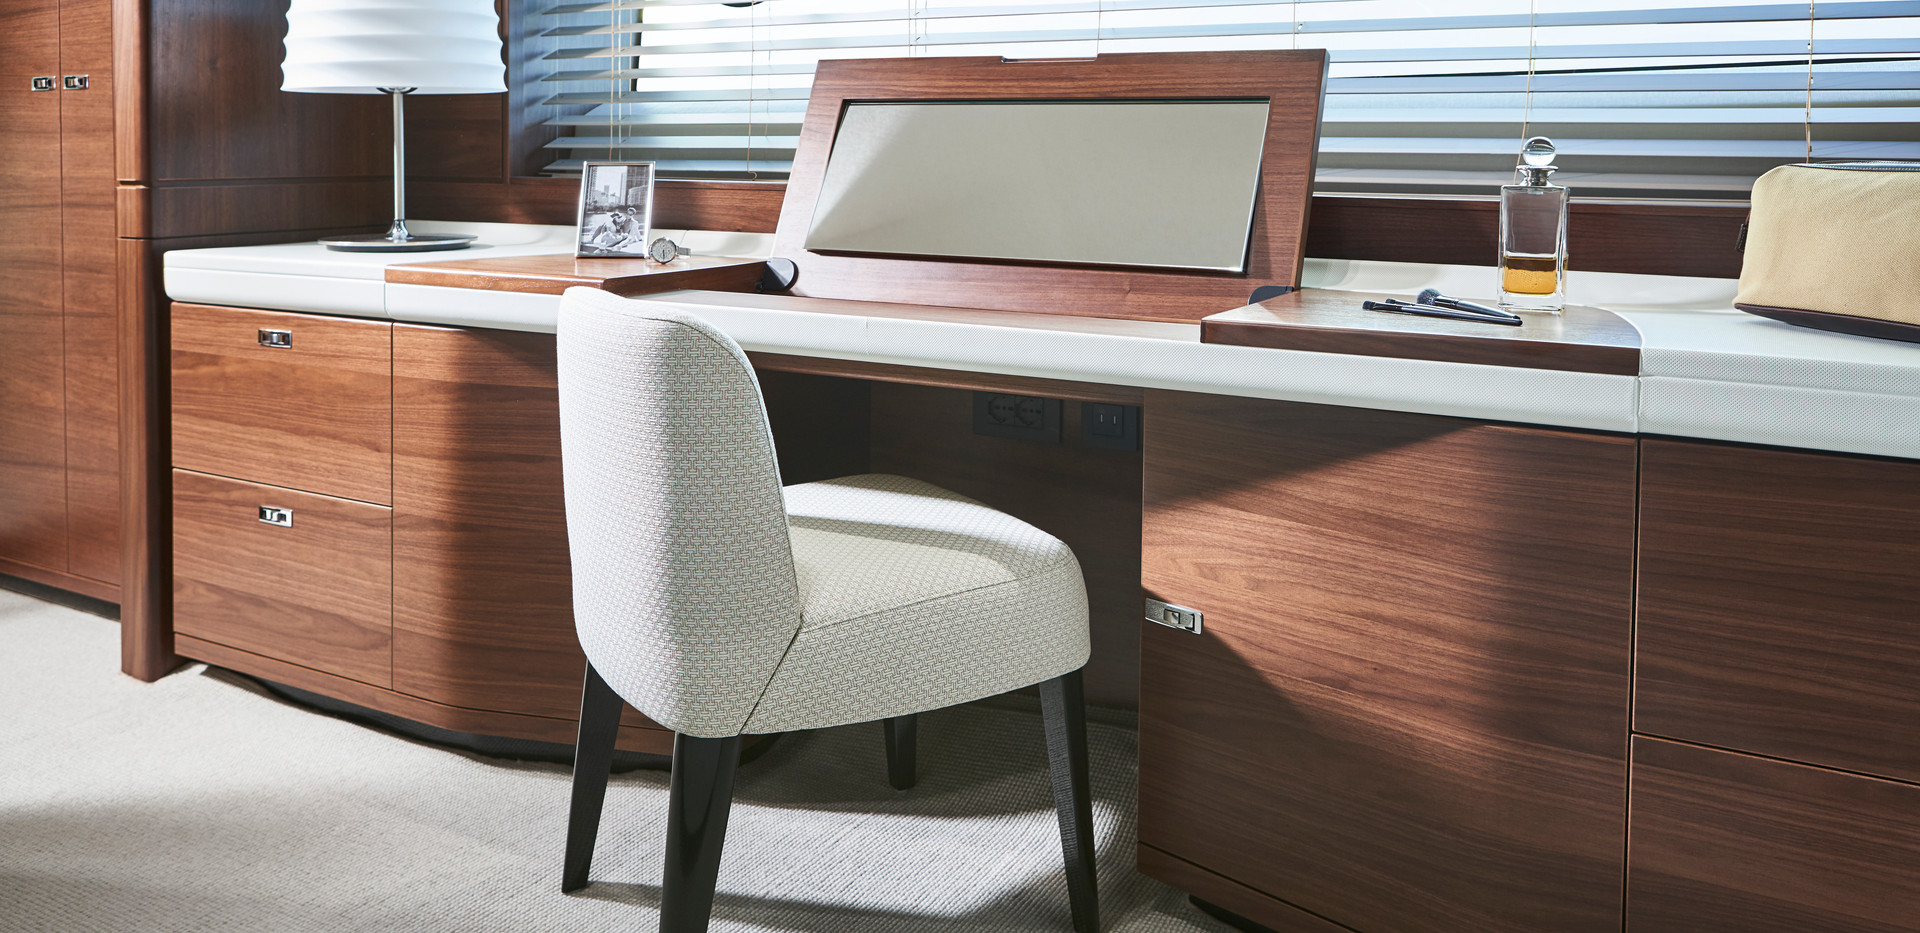 y78-interior-owners-dressing-table-open-